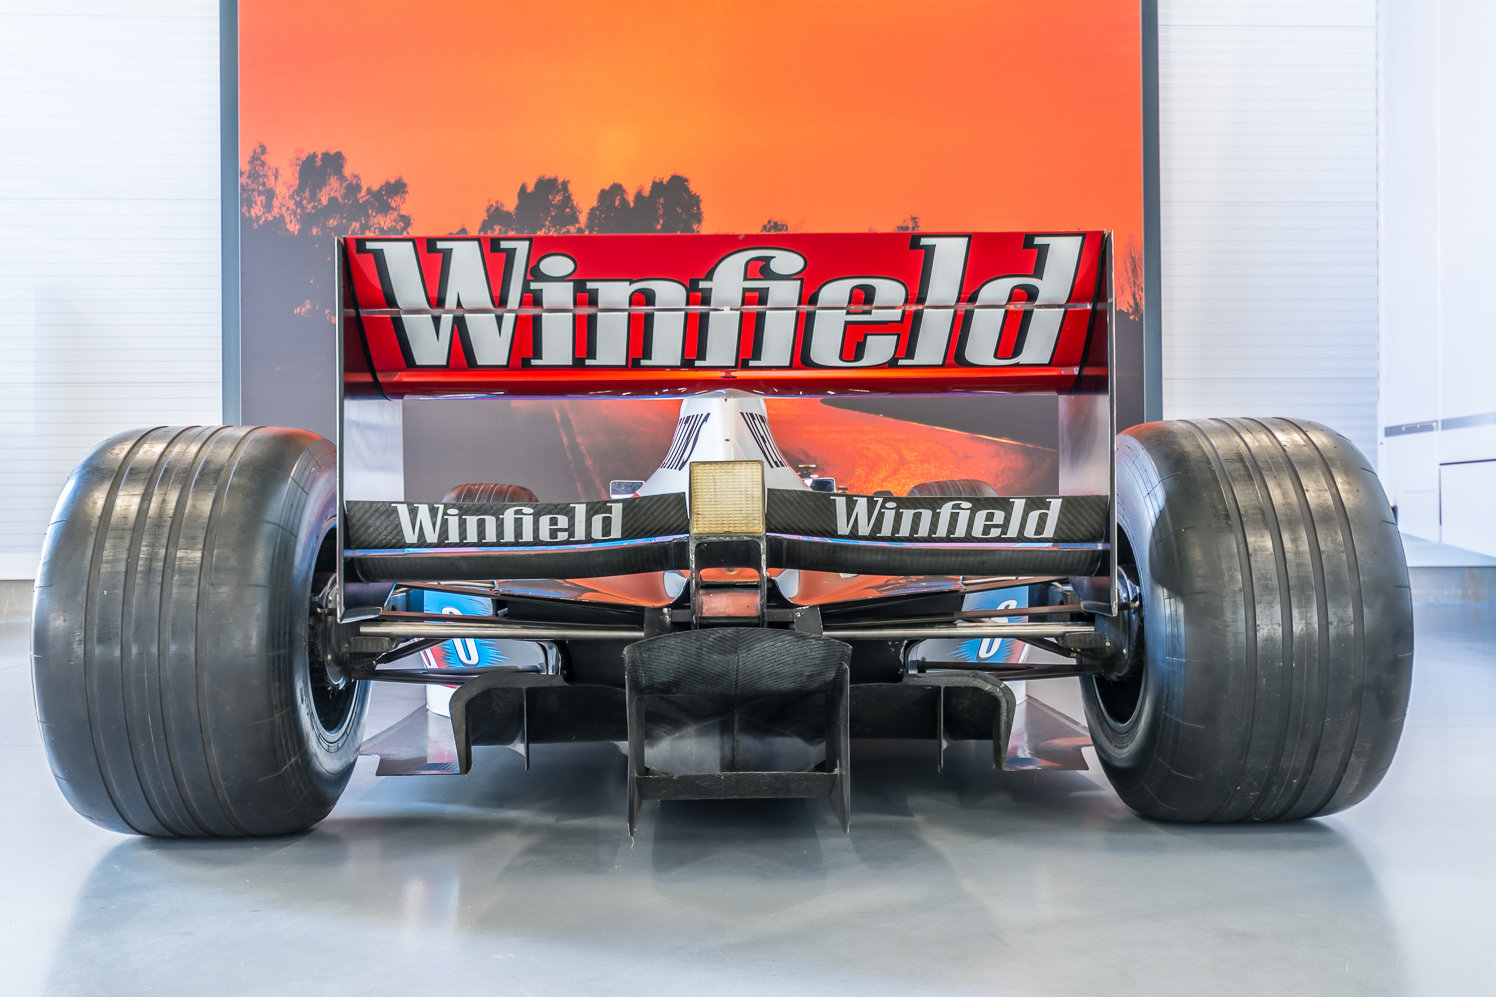 1997 Williams Formula One show-car Ralf Schumacher For Sale (picture 5 of 6)